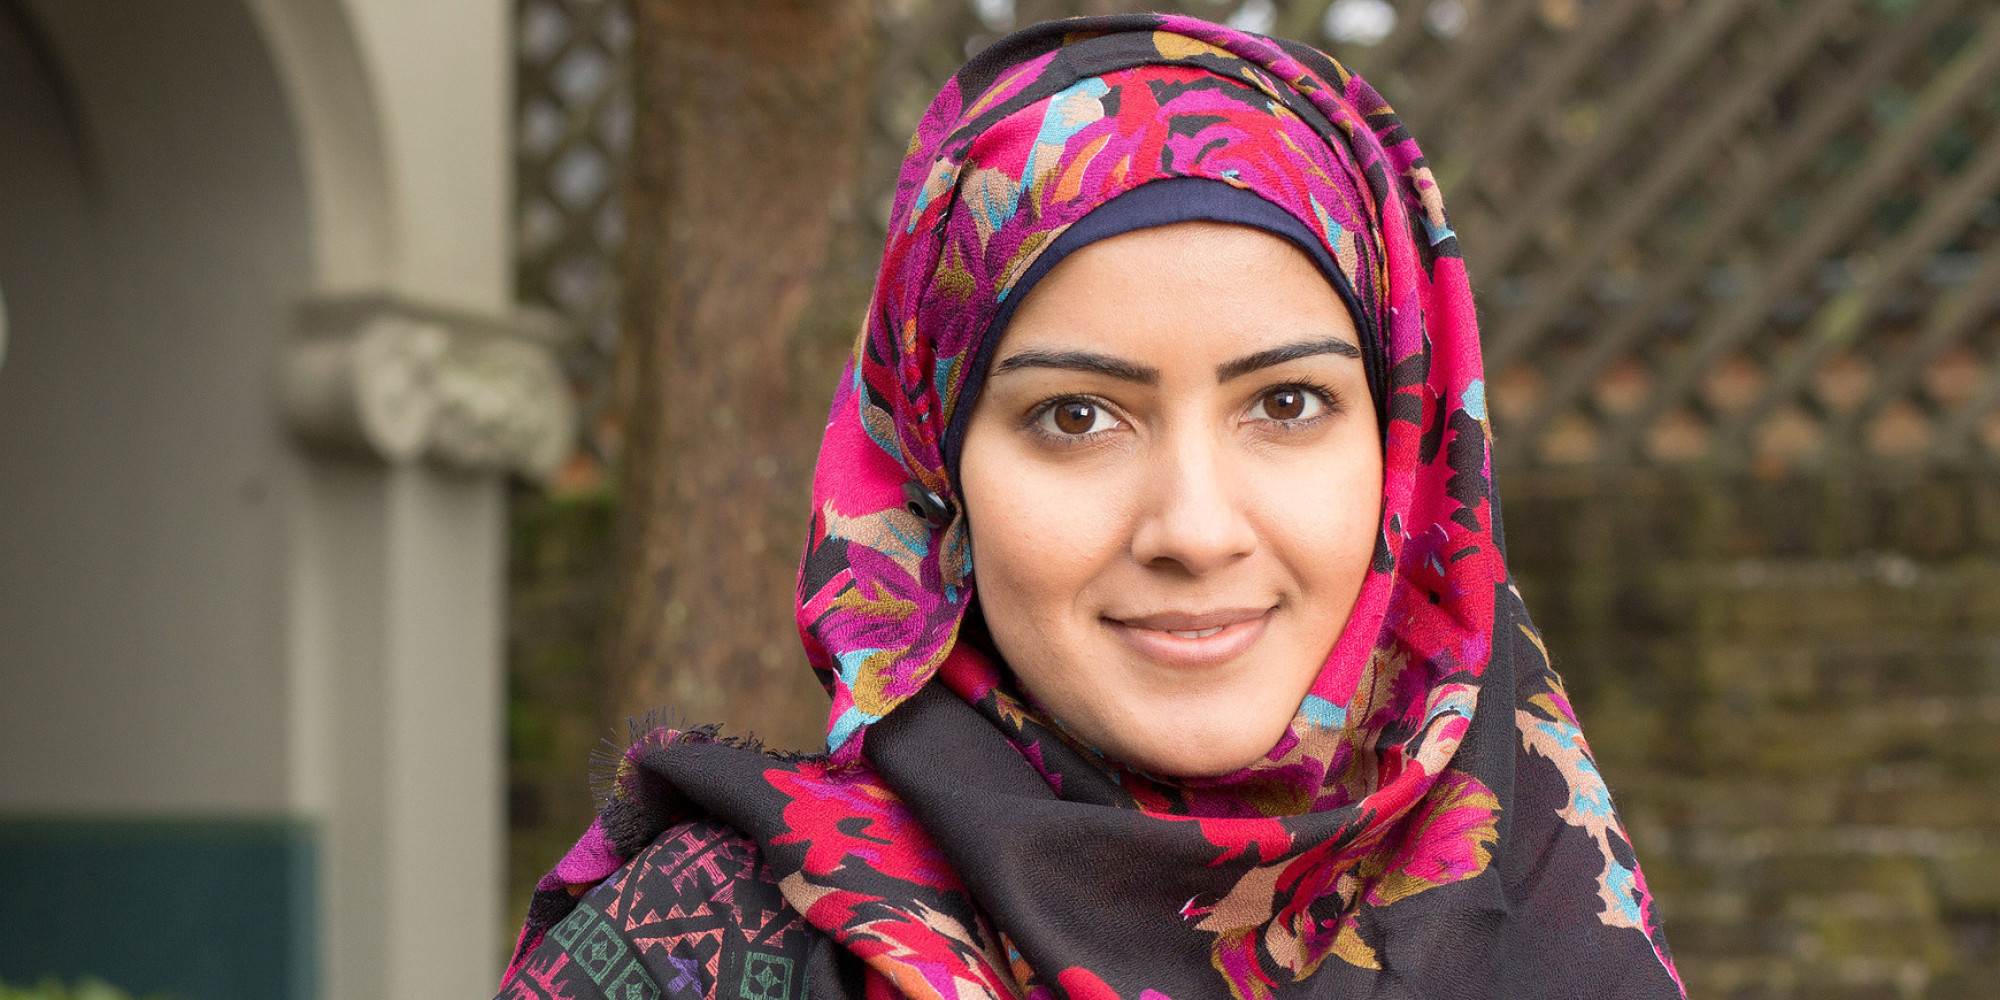 WARNING: Embargoed for publication until: 13/01/2014 - Programme Name: EastEnders - TX: n/a - Episode: n/a (No. n/a) - Picture Shows: *EMBARGOED UNTIL MONDAY 13TH JANUARY, 2014* Shabnam Masood (RAKHEE THAKRAR) - (C) BBC - Photographer: Jack Barnes